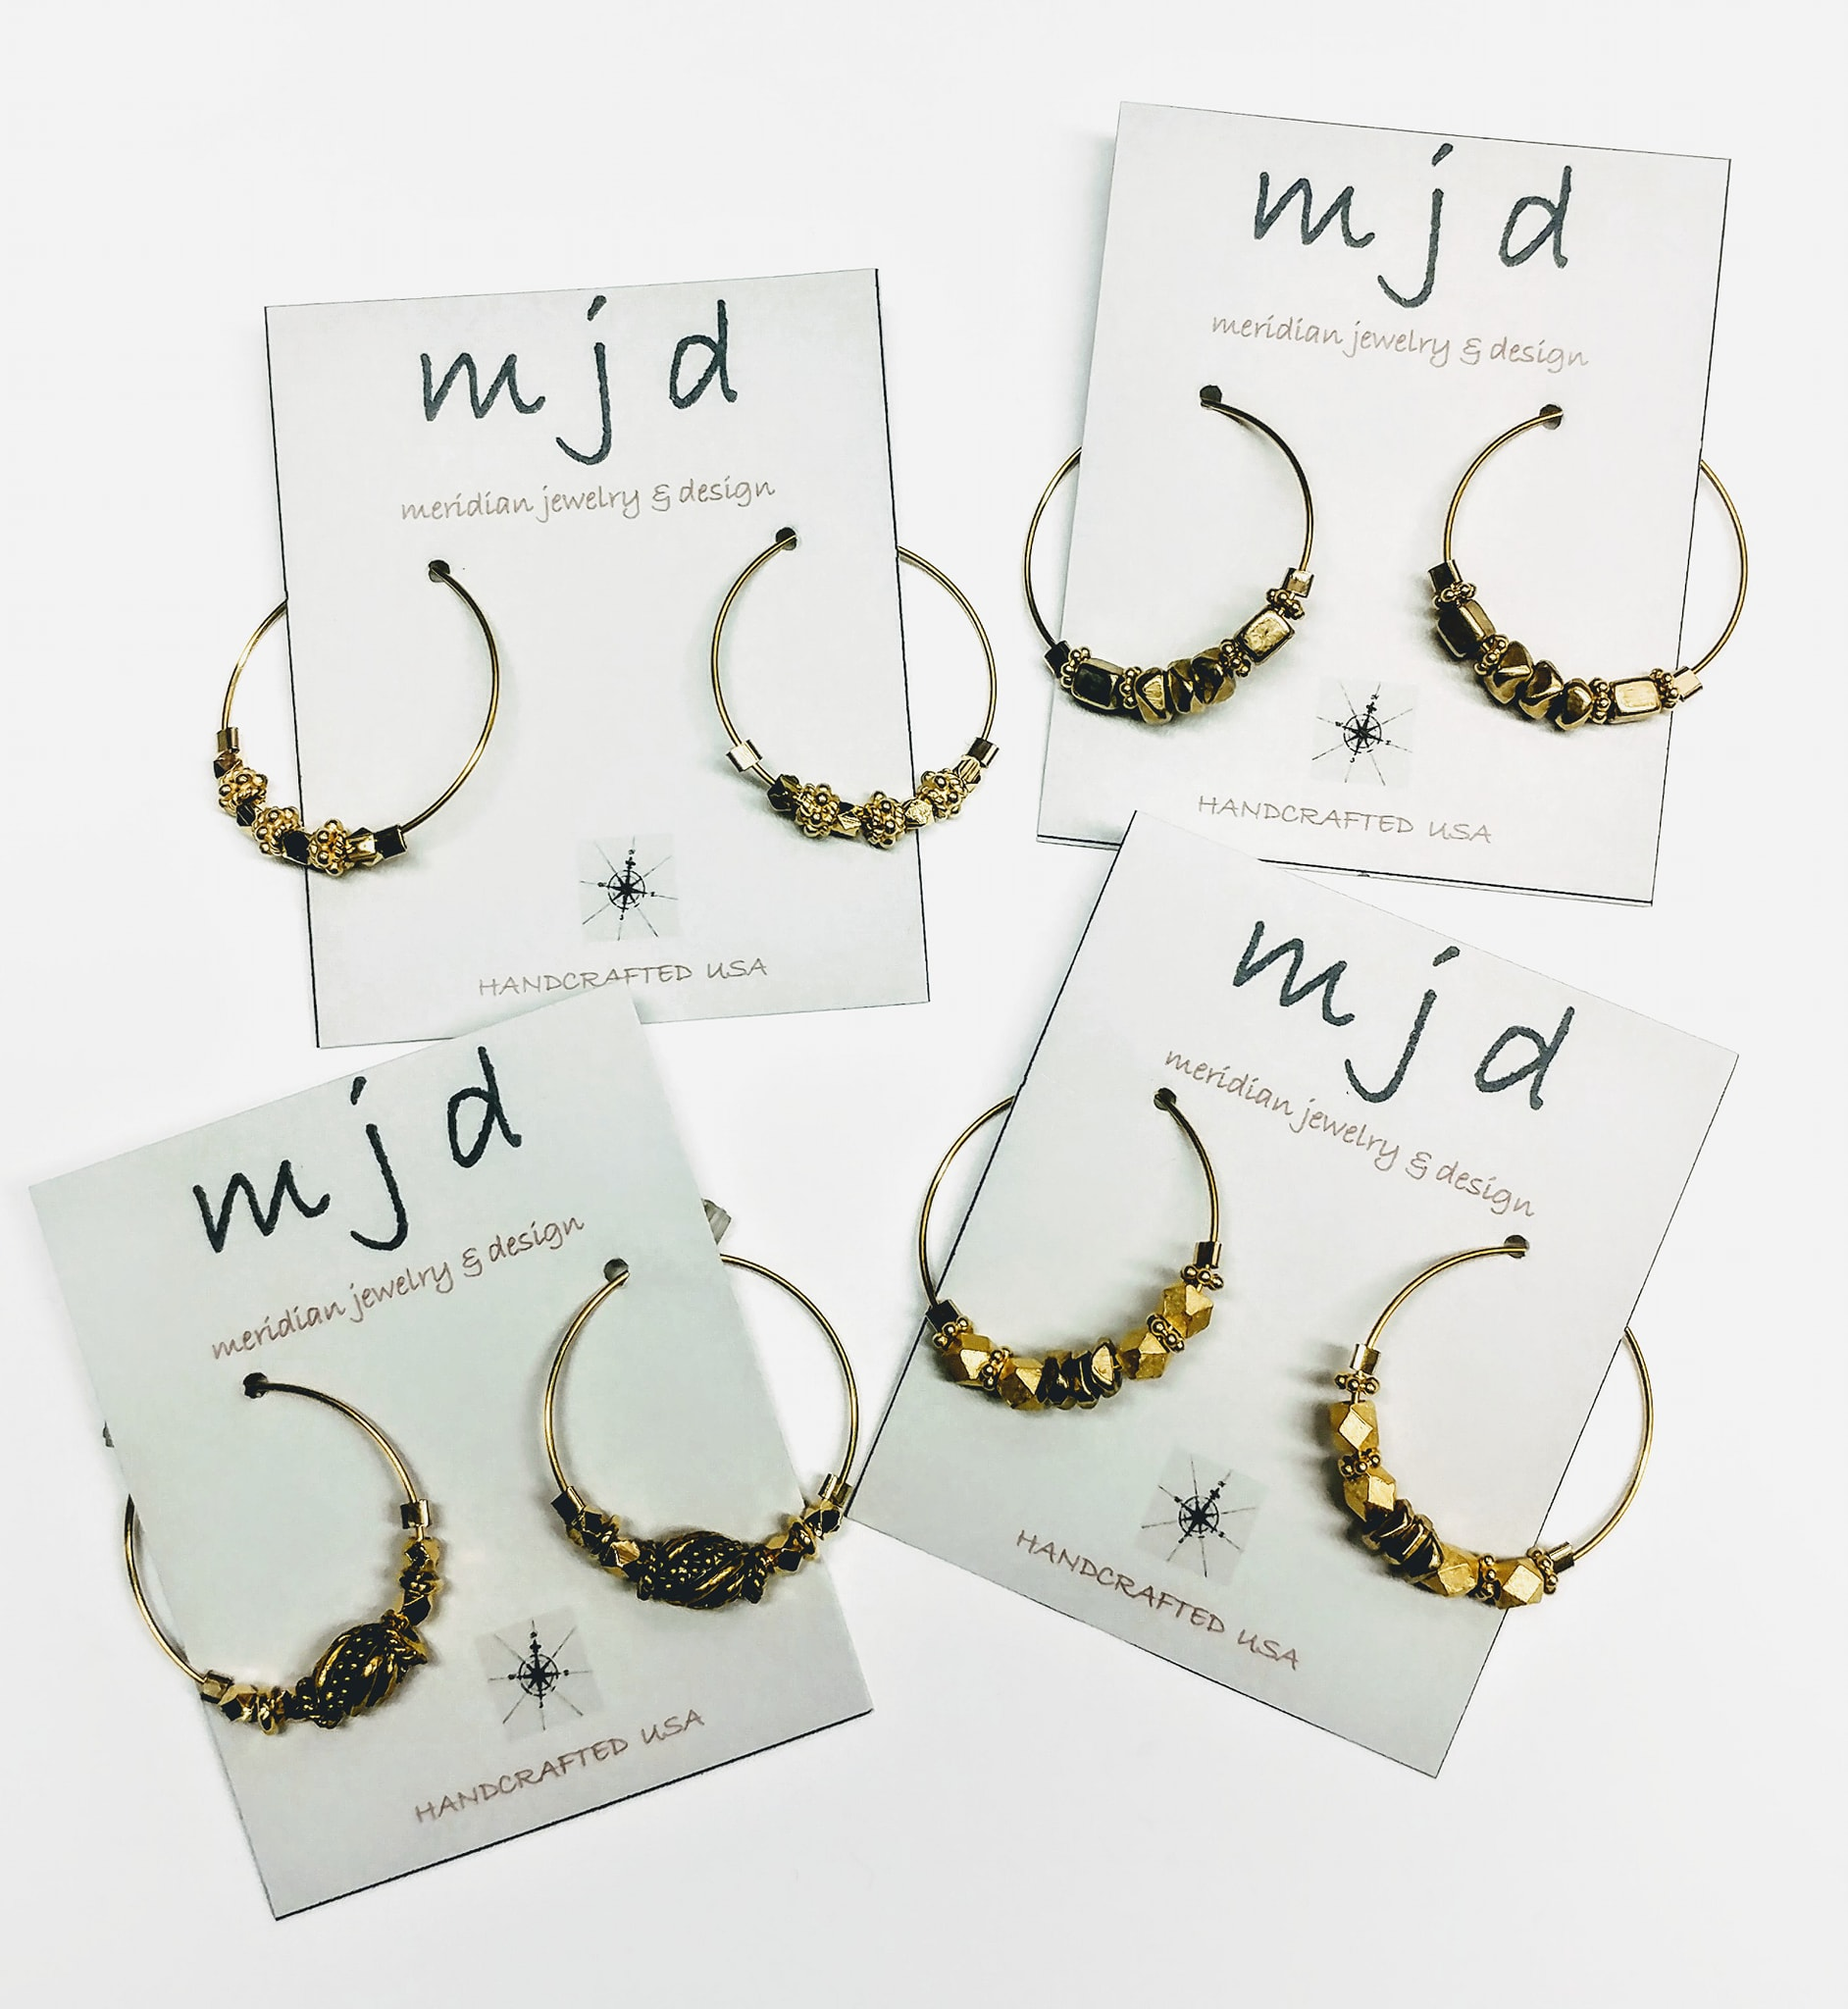 MERIDIAN JEWELRY & DESIGN